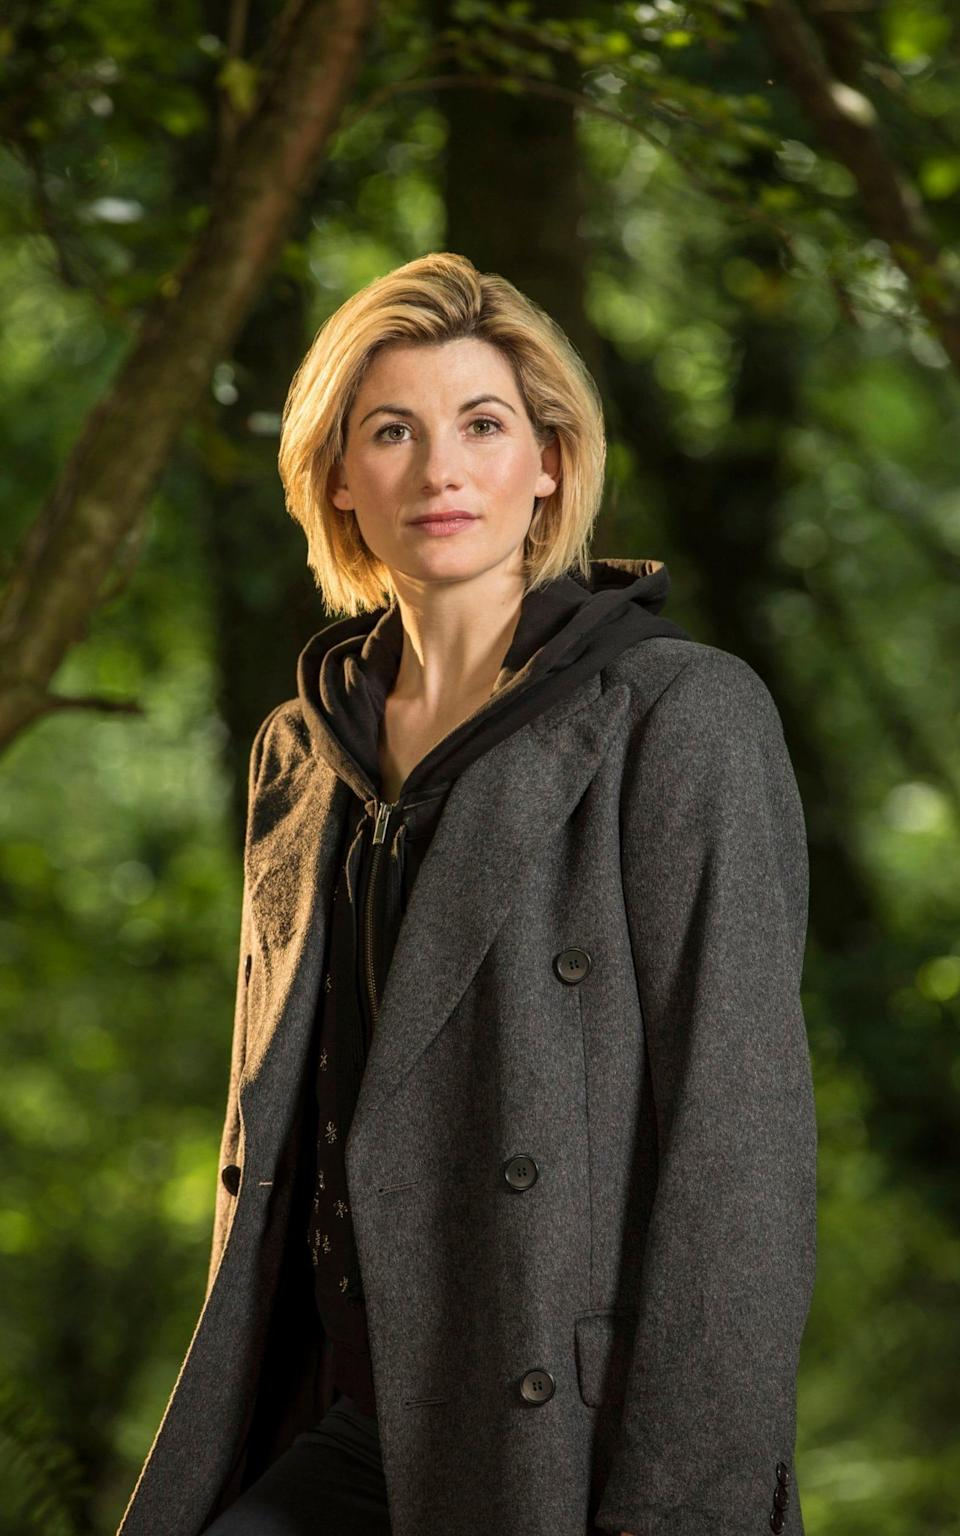 Jodie Whittaker's transition into becoming a female Doctor is easy because he's asexual and not defined by inherently manly traits (BBC)